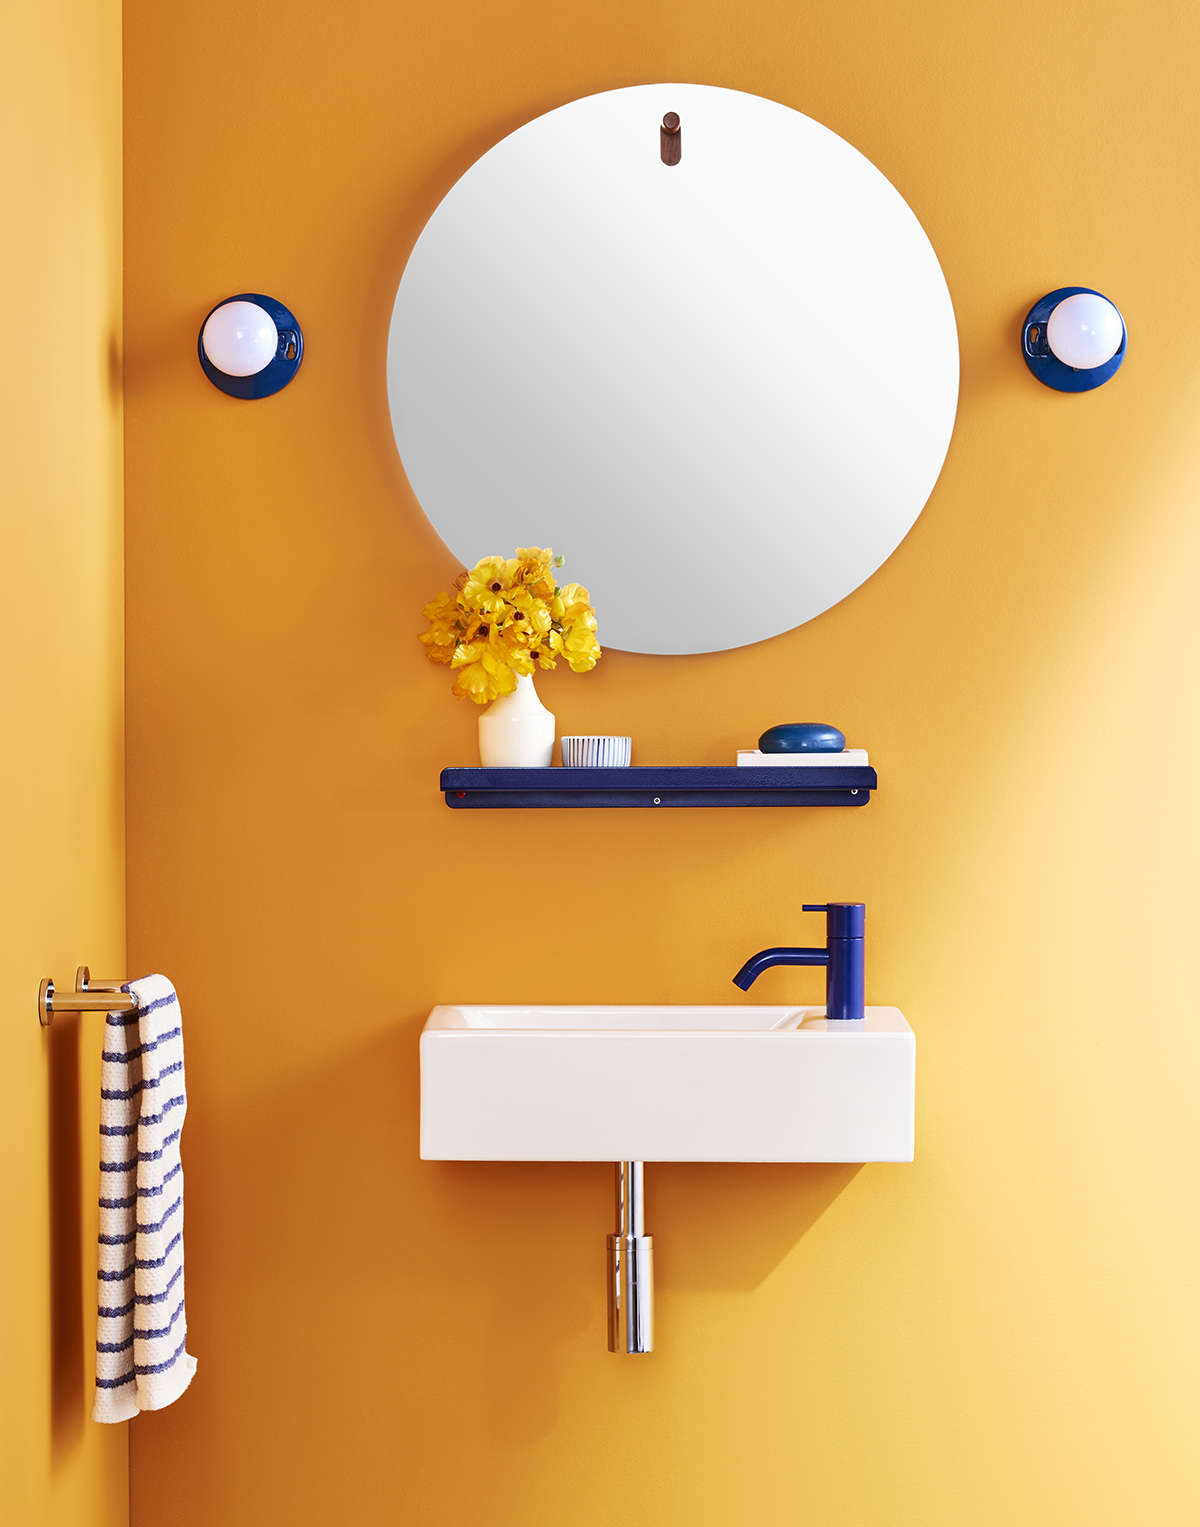 170418-Palette-Powder-Room-829-CC-6345963-V5